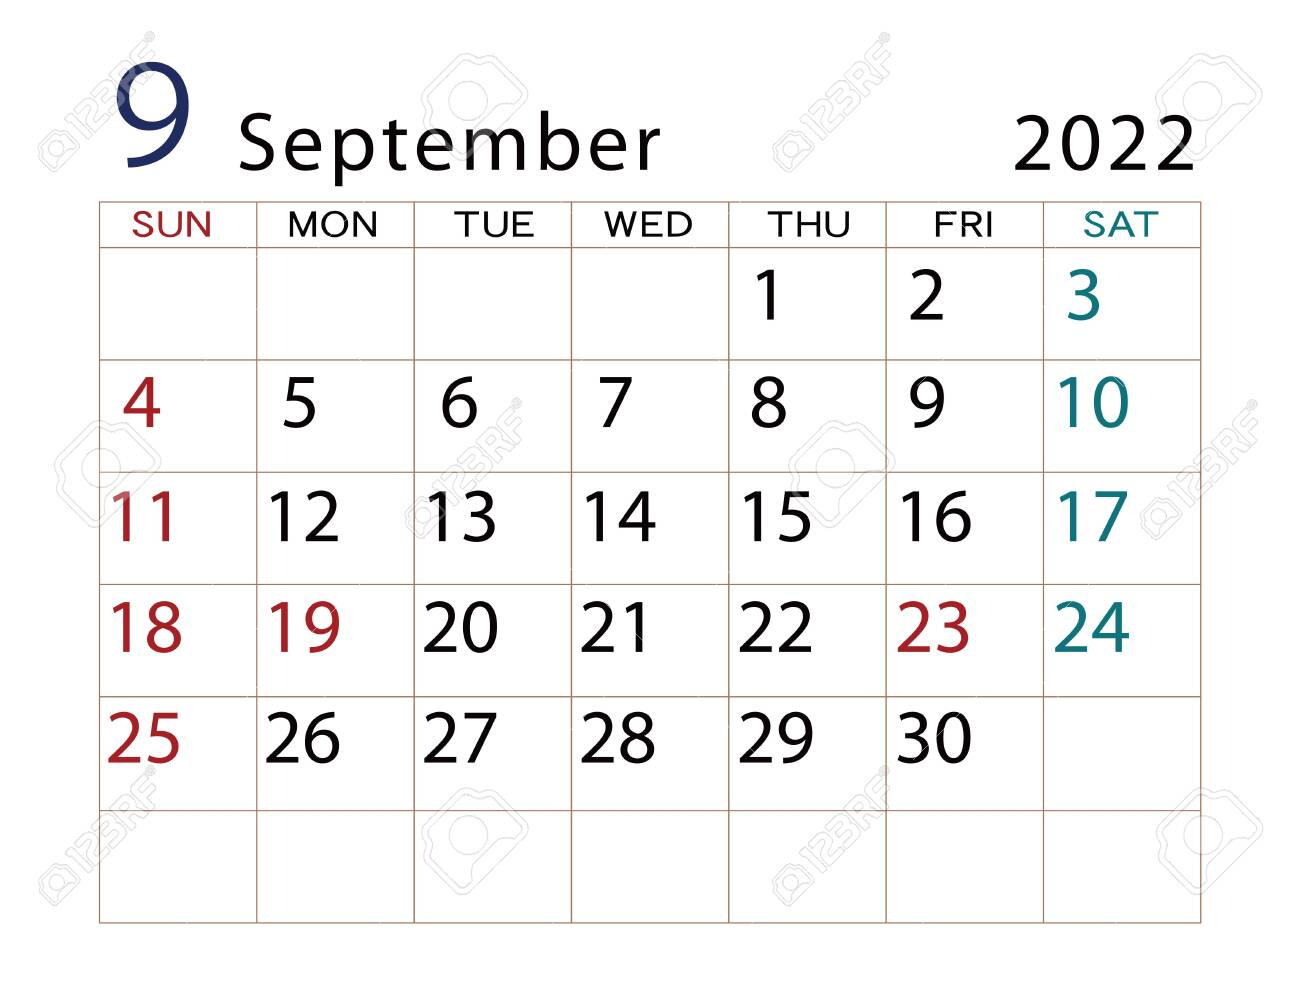 Calendar September 2022.2022 Calendar September Part 2 Stock Photo Picture And Royalty Free Image Image 153252897